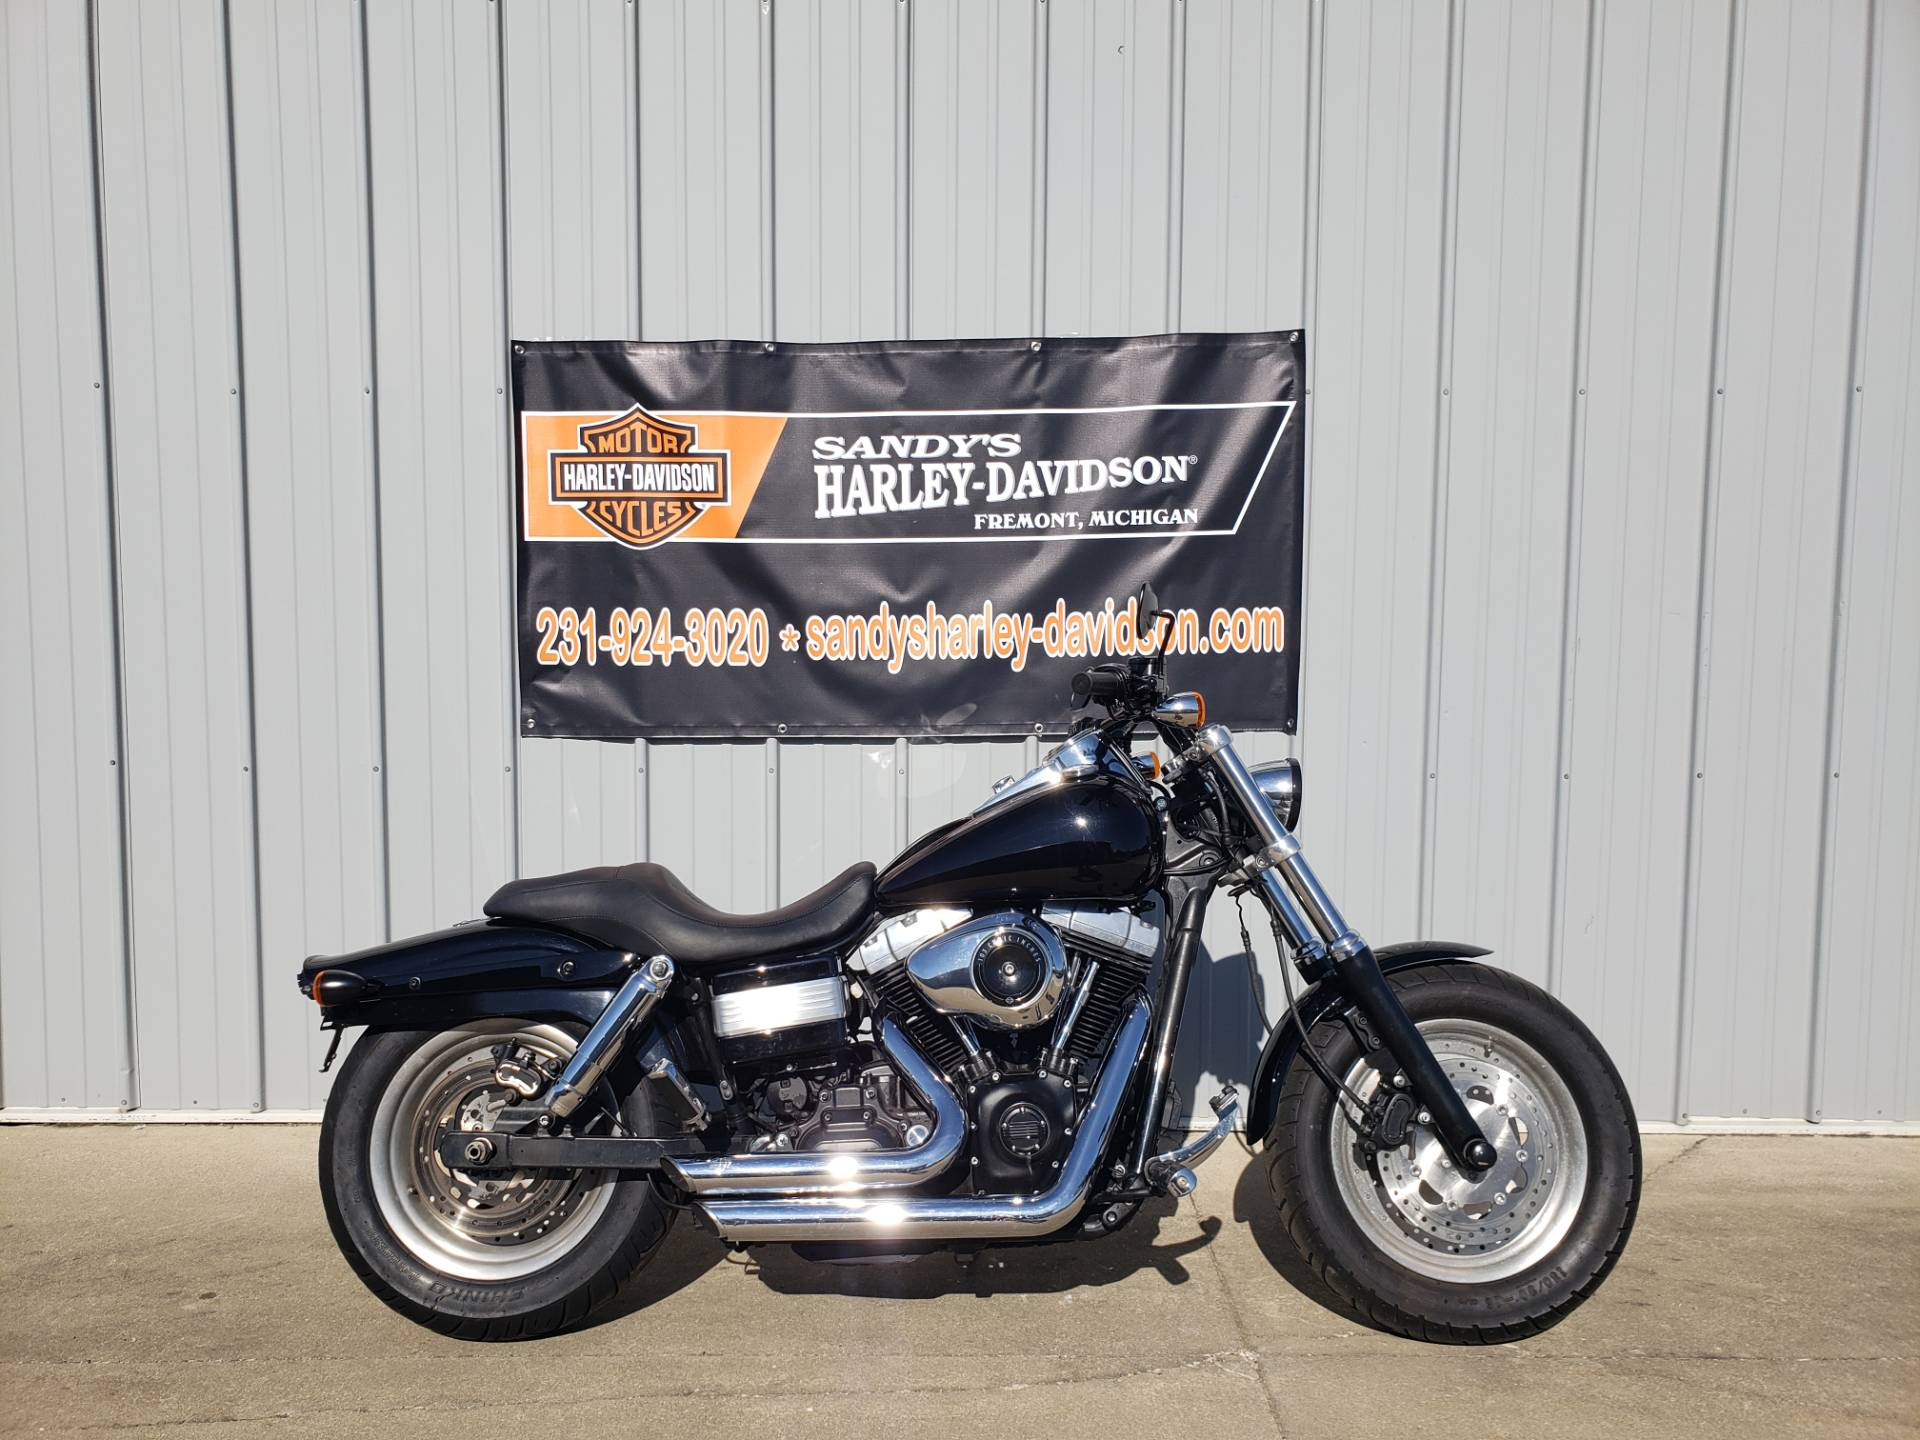 2013 Harley-Davidson Dyna® Fat Bob® in Fremont, Michigan - Photo 1